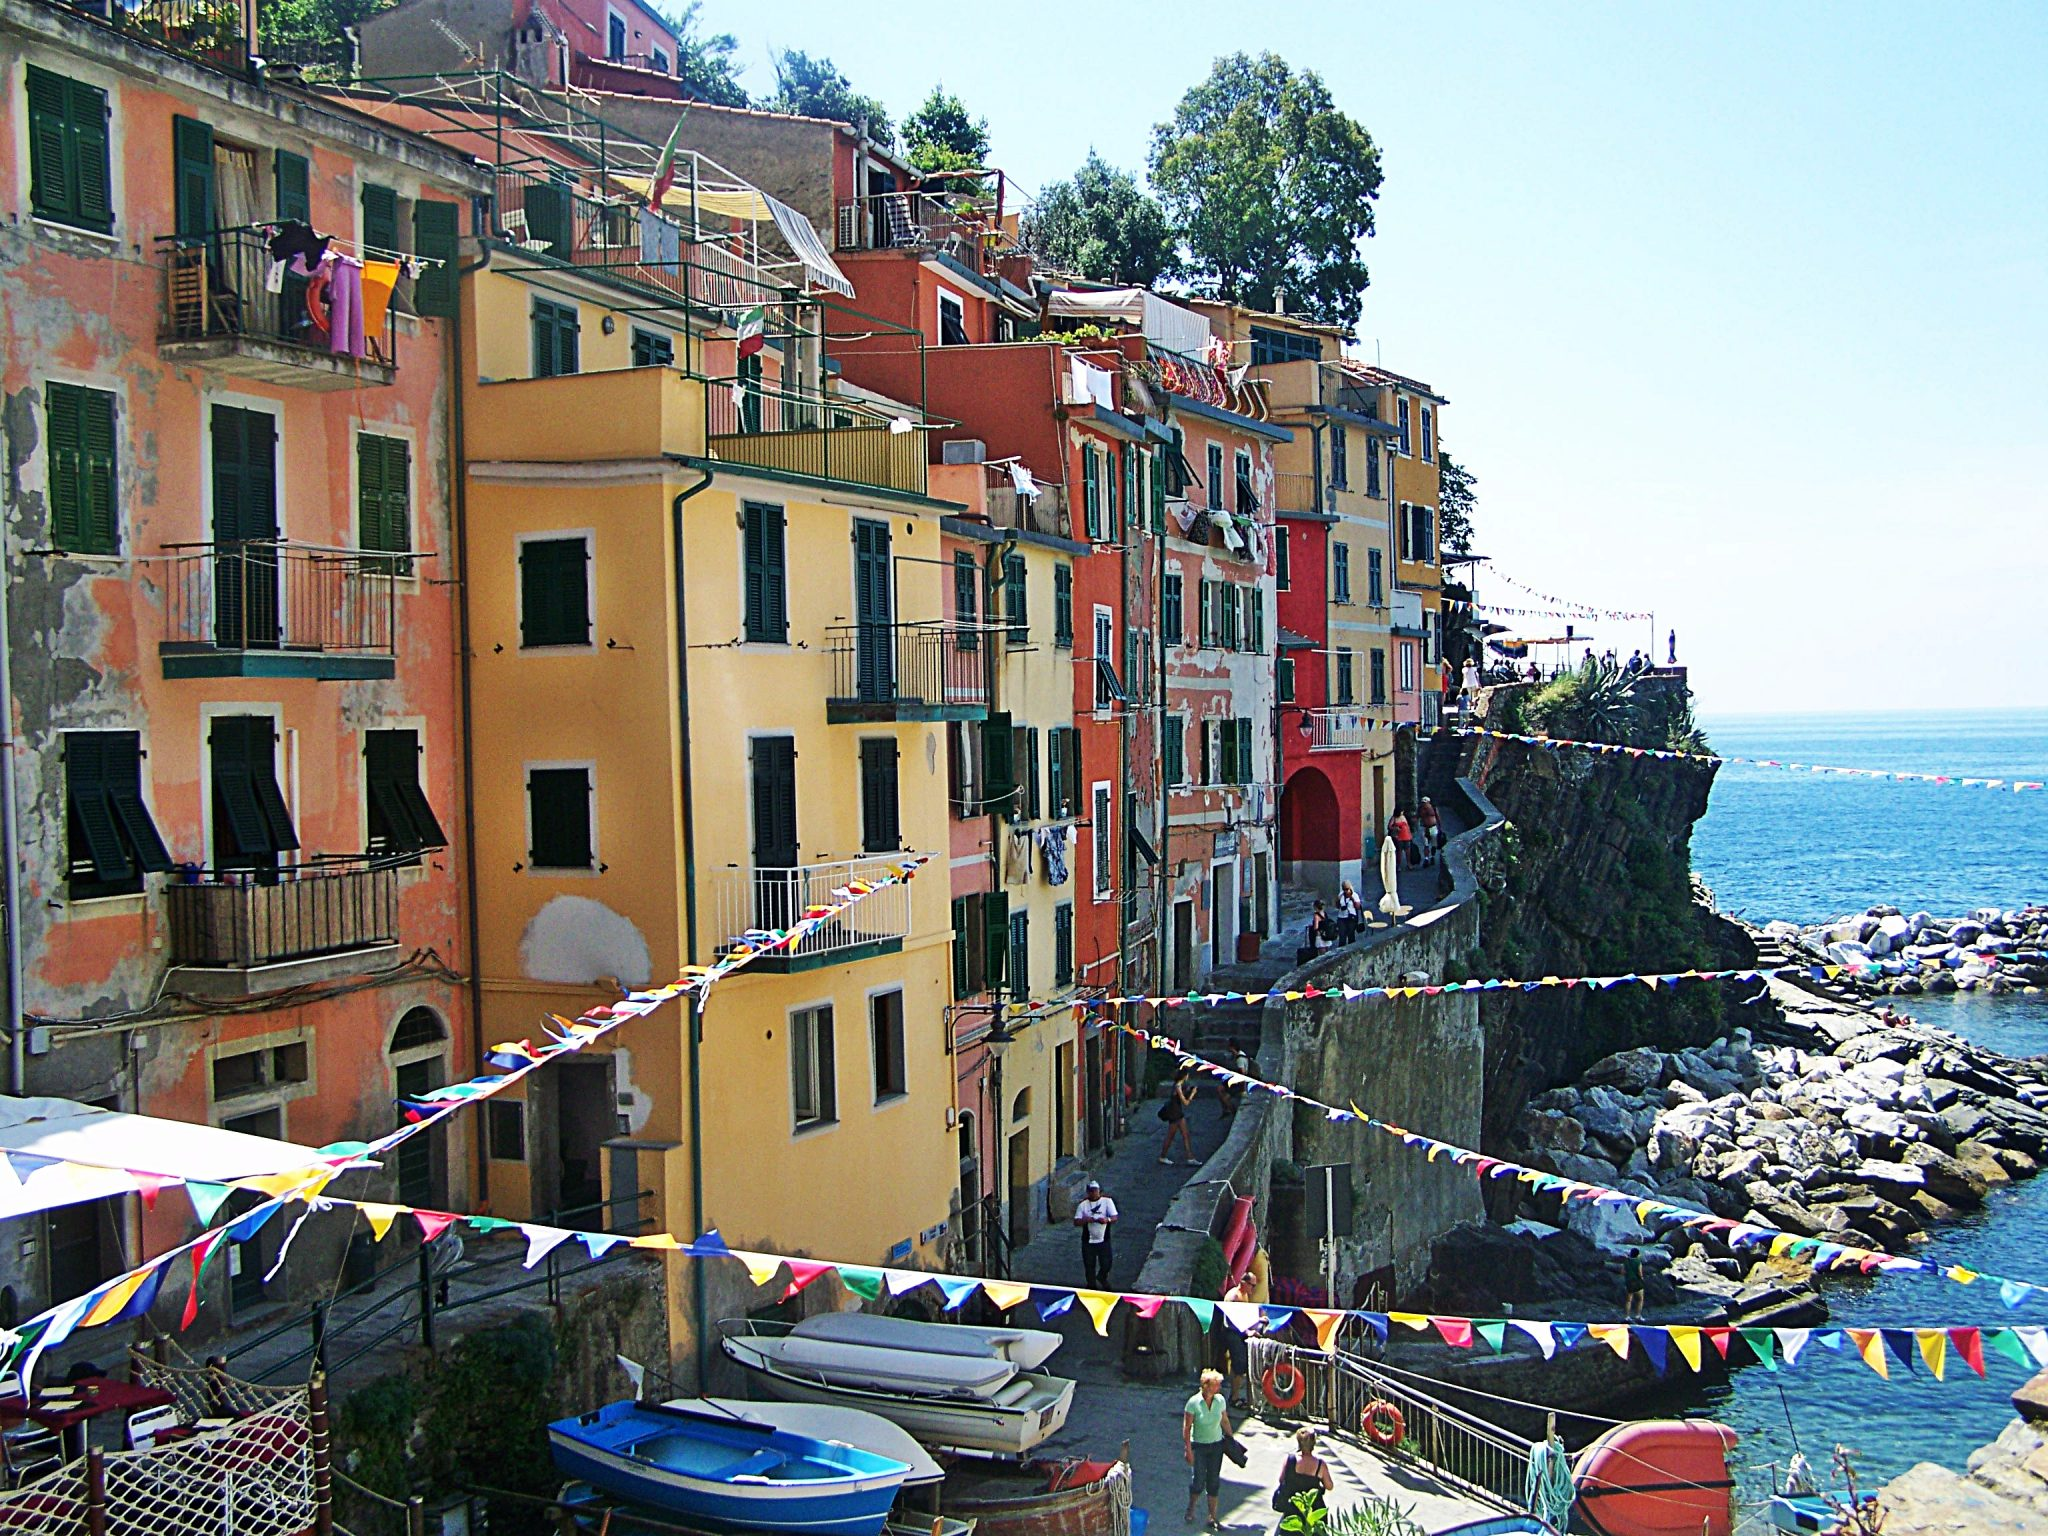 Where to stay in Cinque Terre: a guide to choose your favorite village